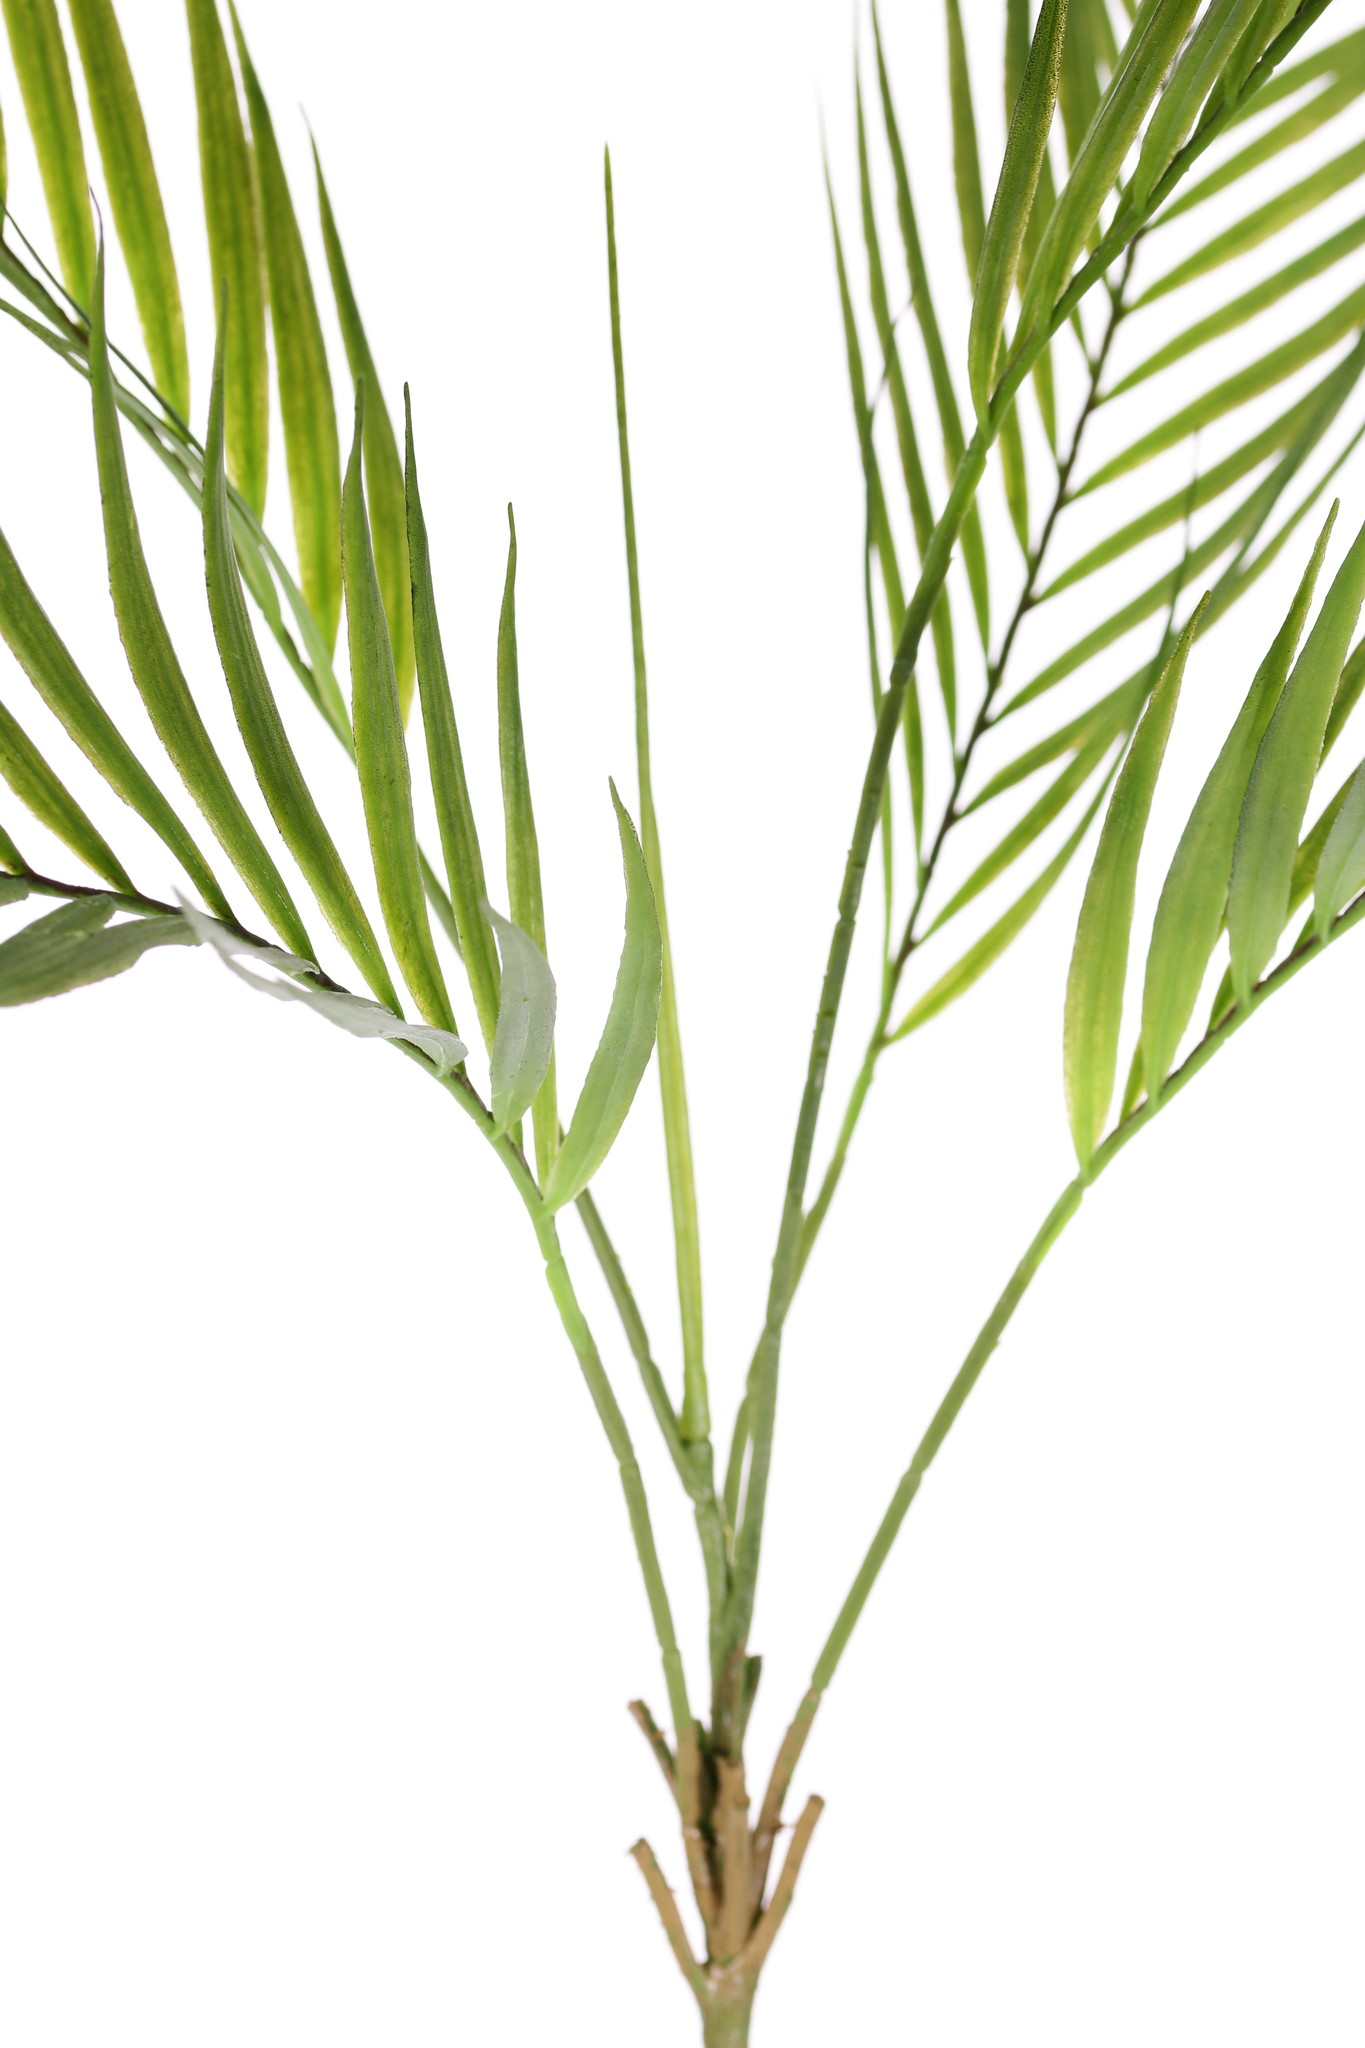 Areca palm (golden cane palm) bush, 5 palm fronds, 'Feel Real', 76cm